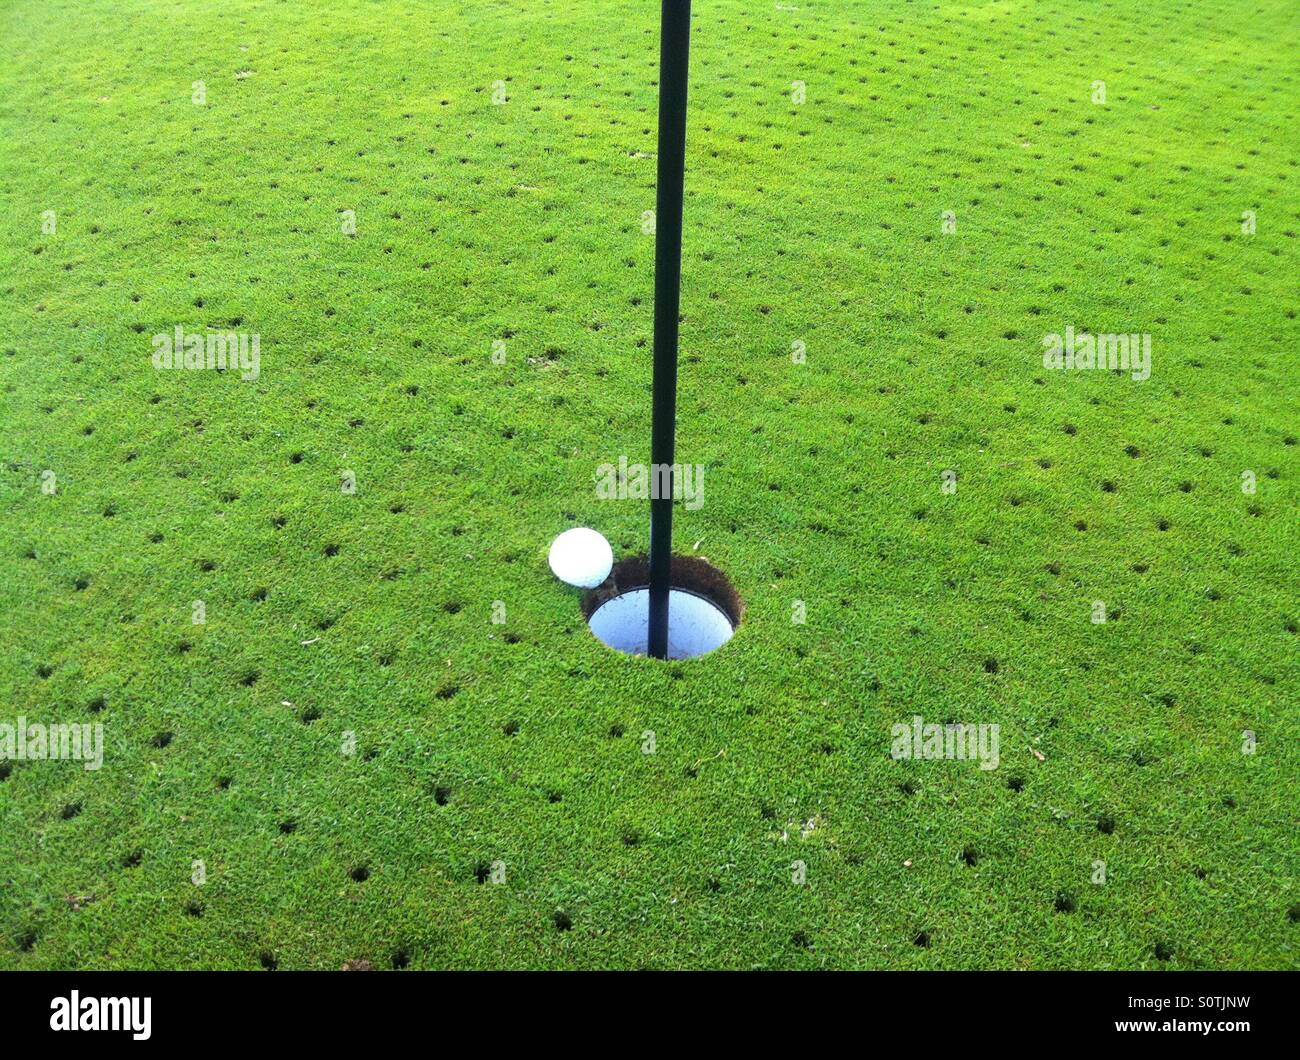 A golf ball plugged in the green right next to the hole on a par 3, very nearly a hole in one - Stock Image